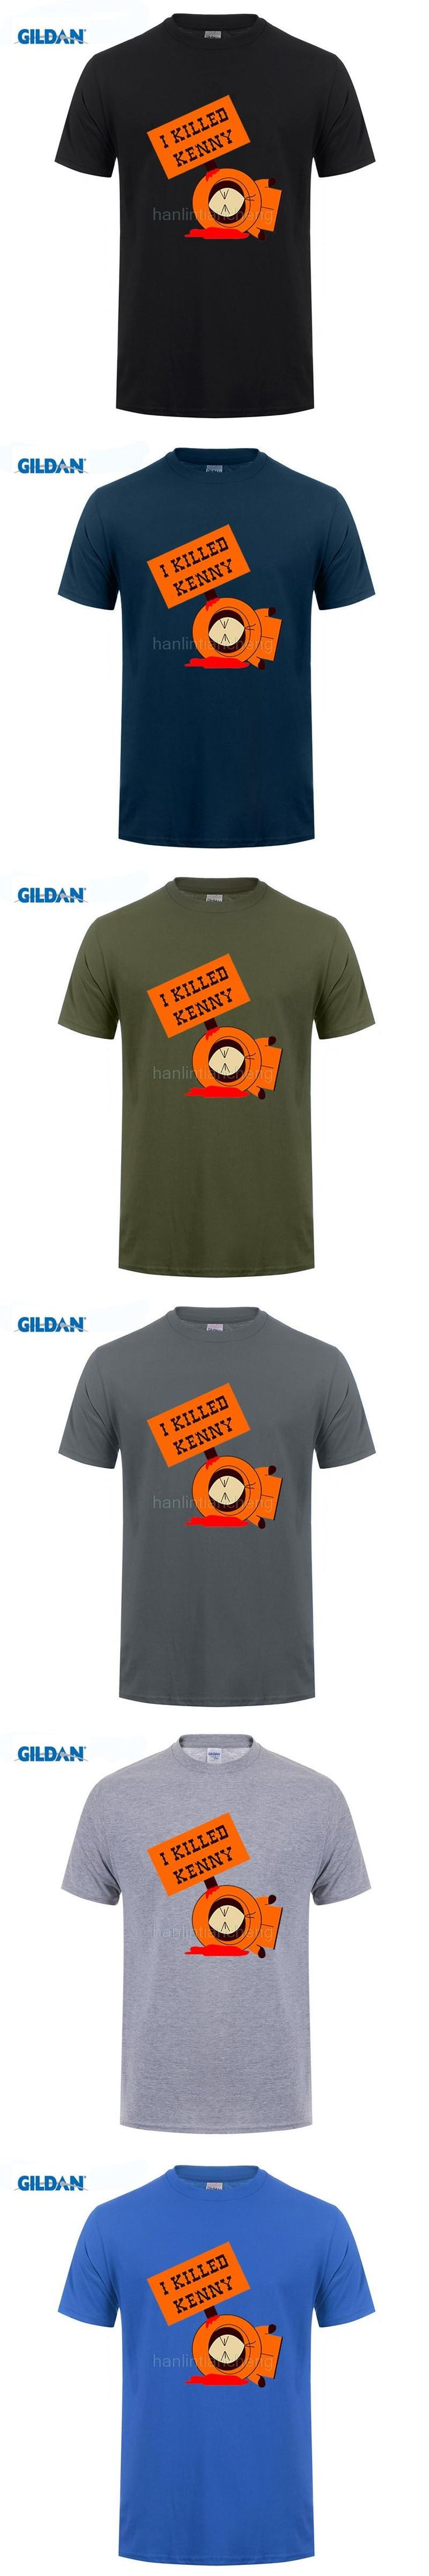 GILDAN O-Neck customised T-shirt fashion I Killed Kenny South Park Printed t shirt Cotton O NECK short sleeved t-shirt